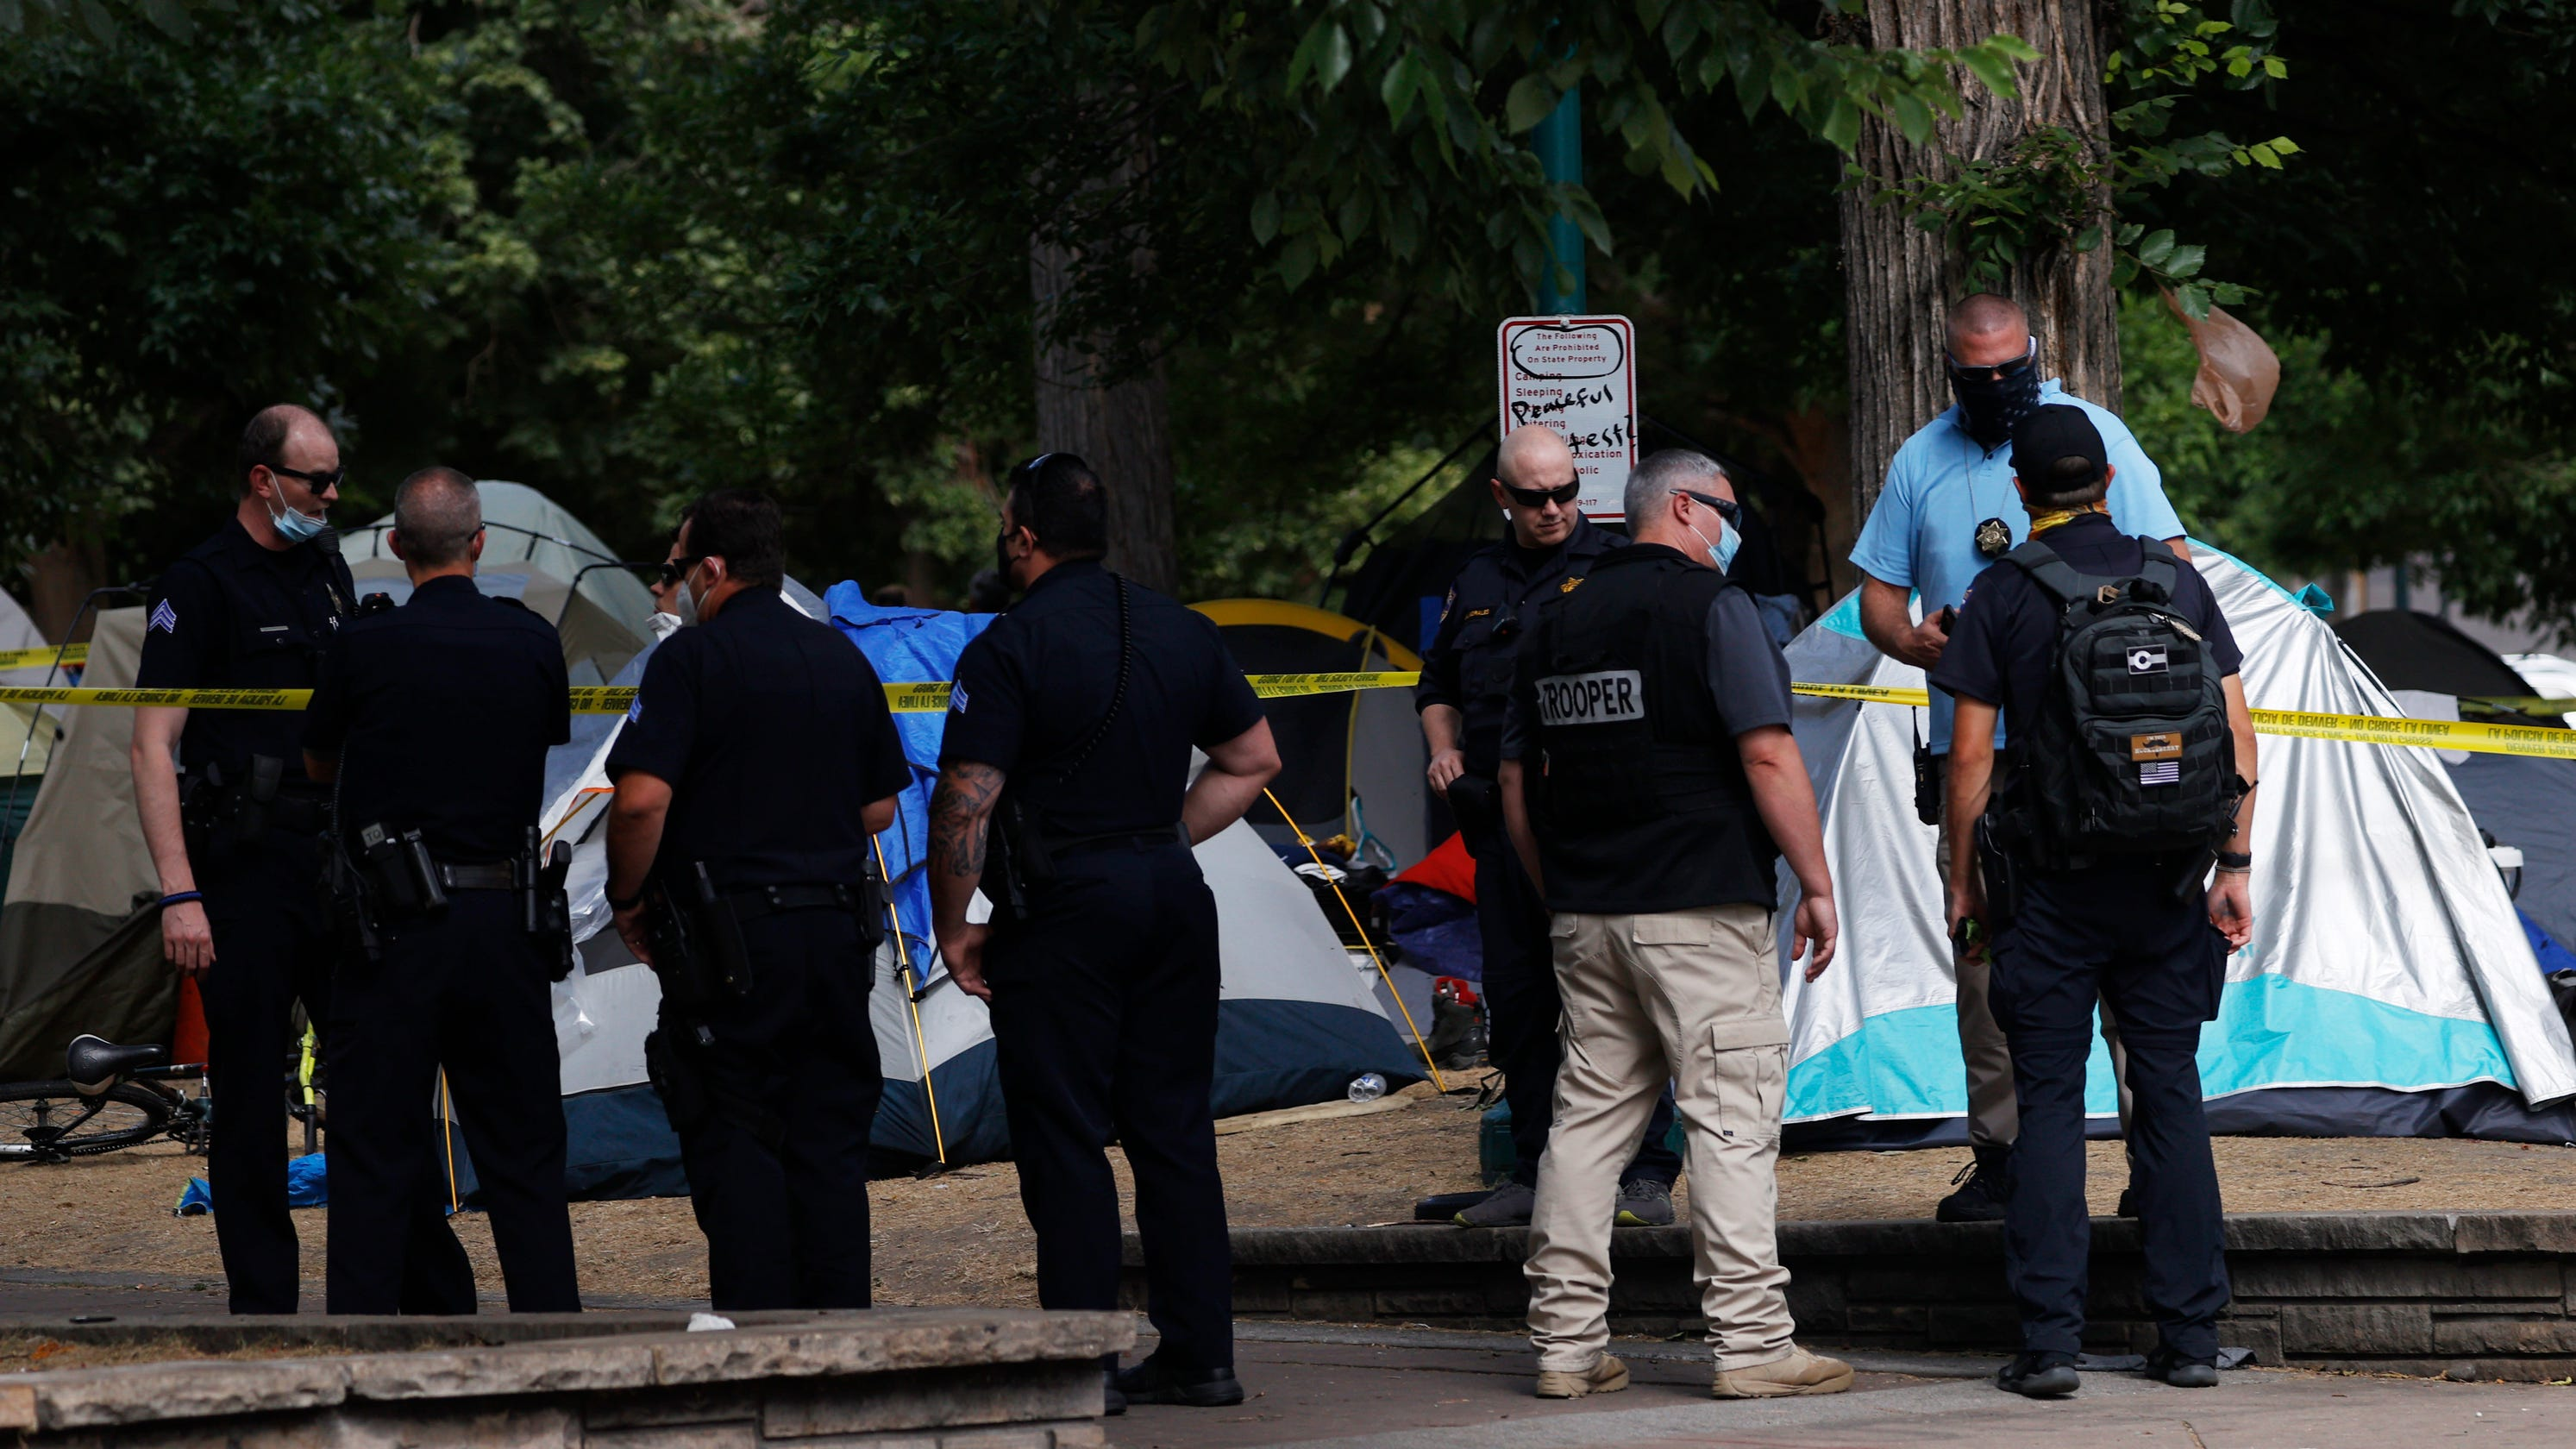 10 injured in Denver drive-by shooting while gathering at local park police say – USA TODAY